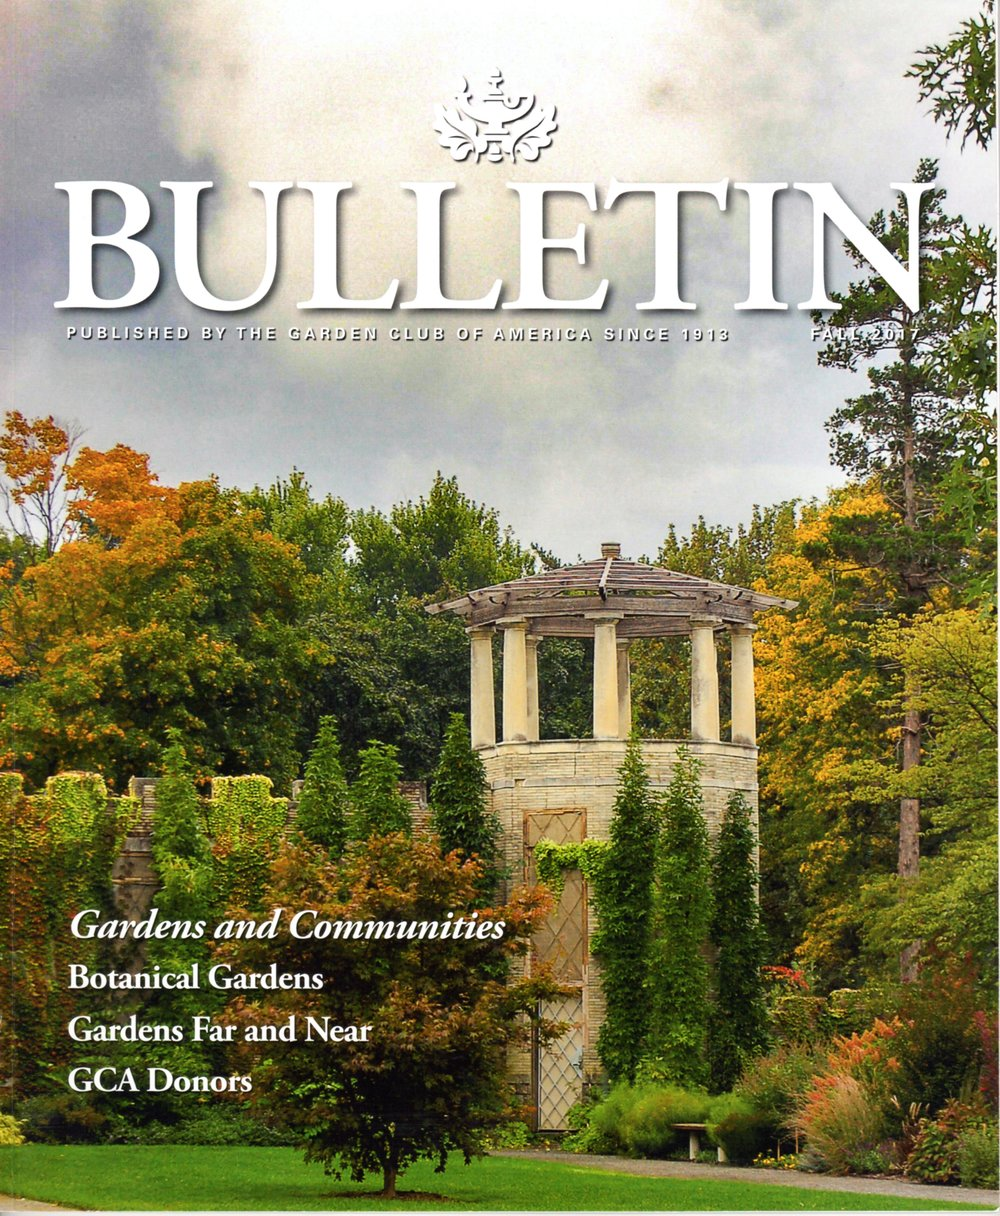 Pennoyer Newman in Garden Club of America Bulletin, Fall 2017